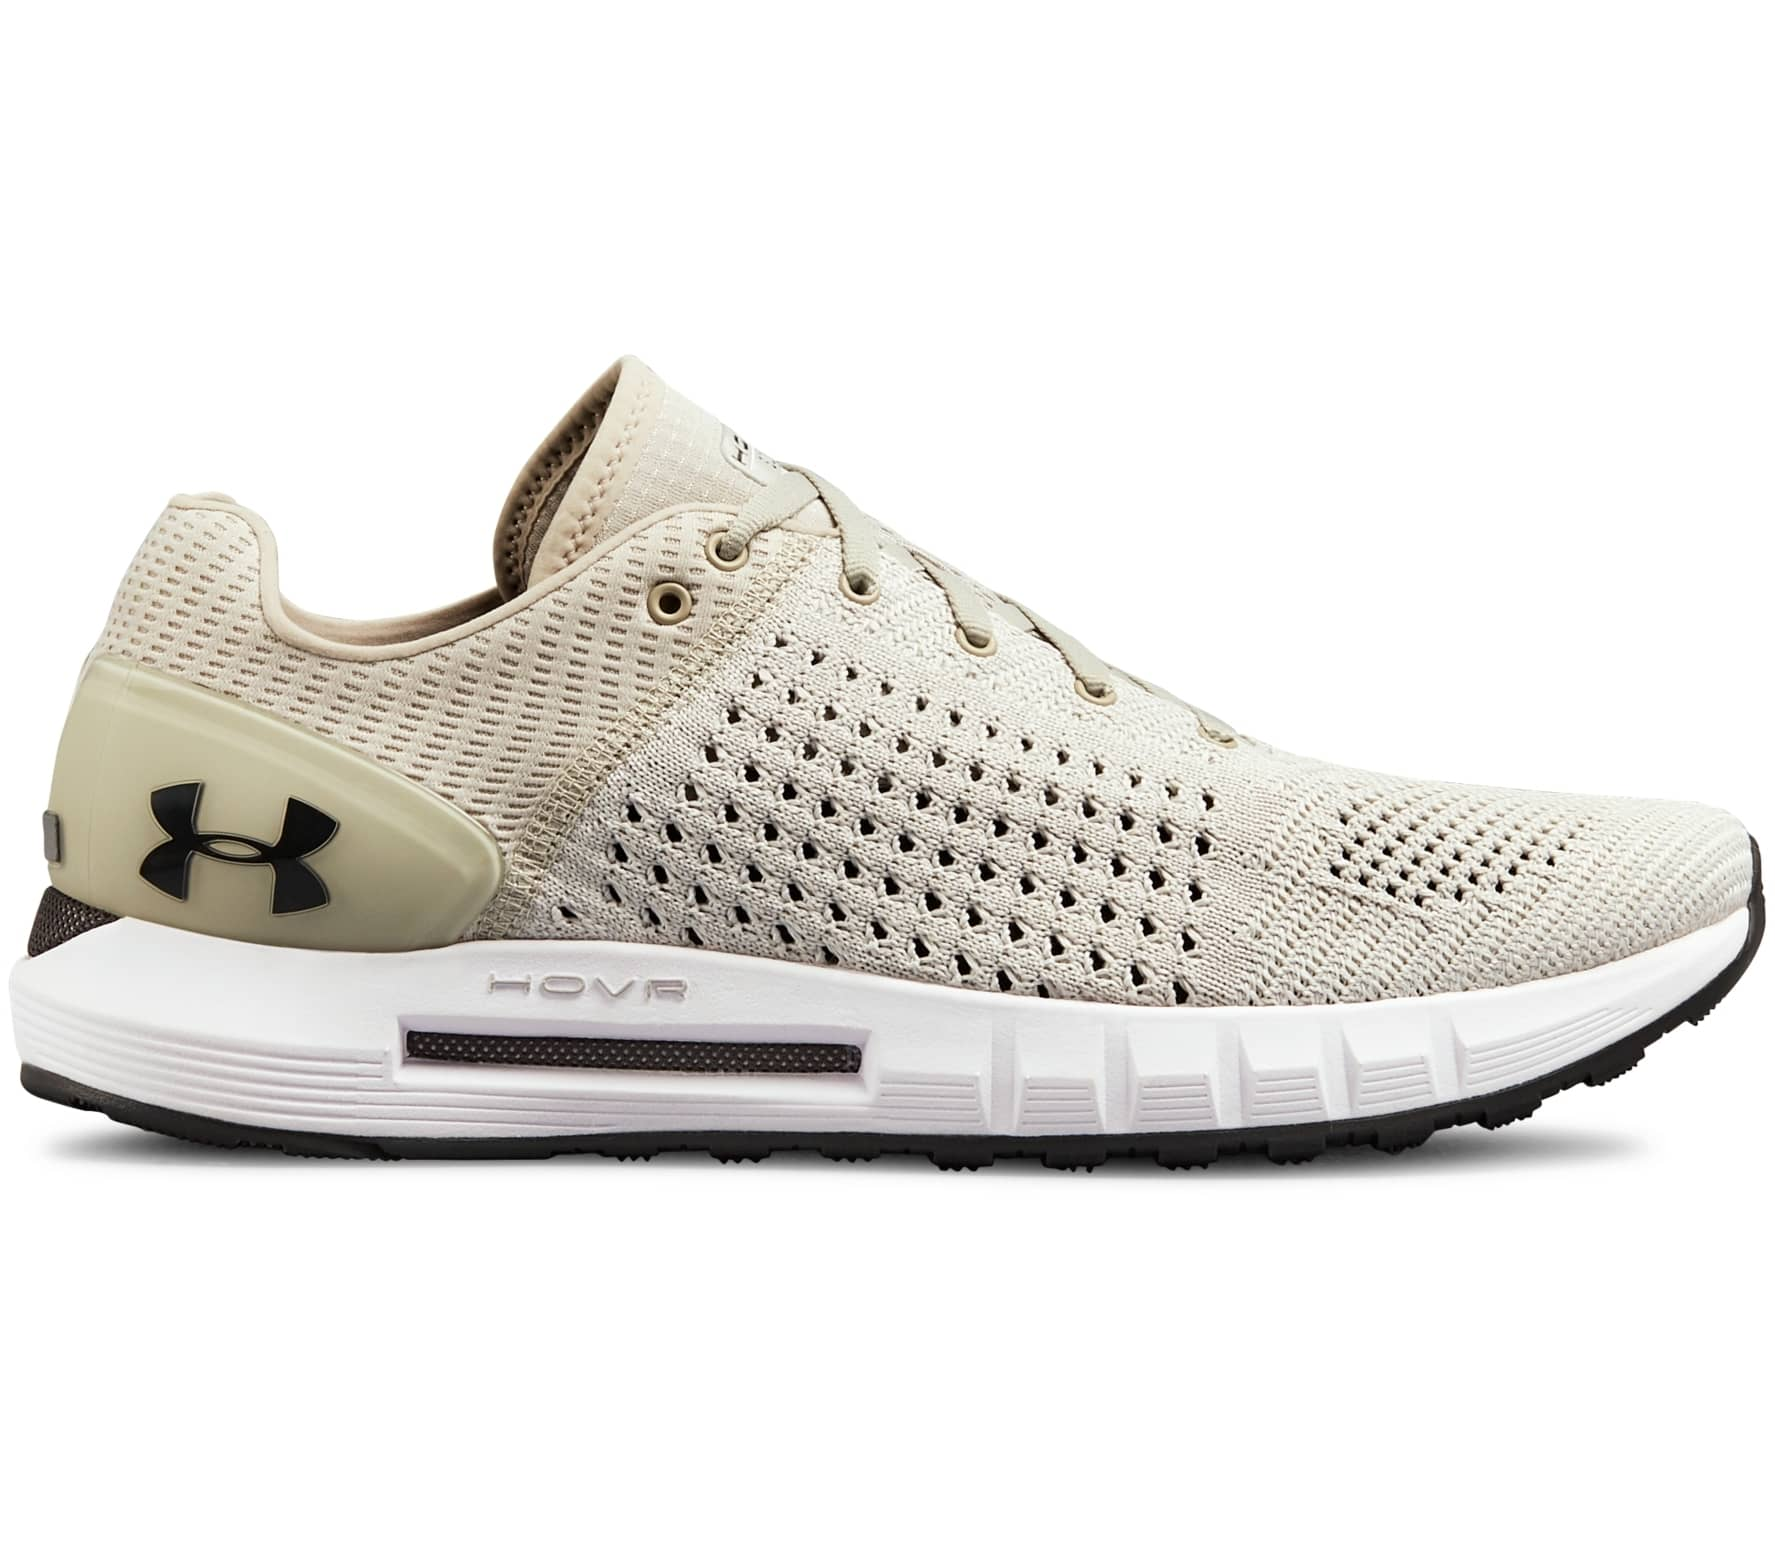 b35fbf5aee Under Armour - Hovr Sonic NC men s running shoes (white grey) - buy ...